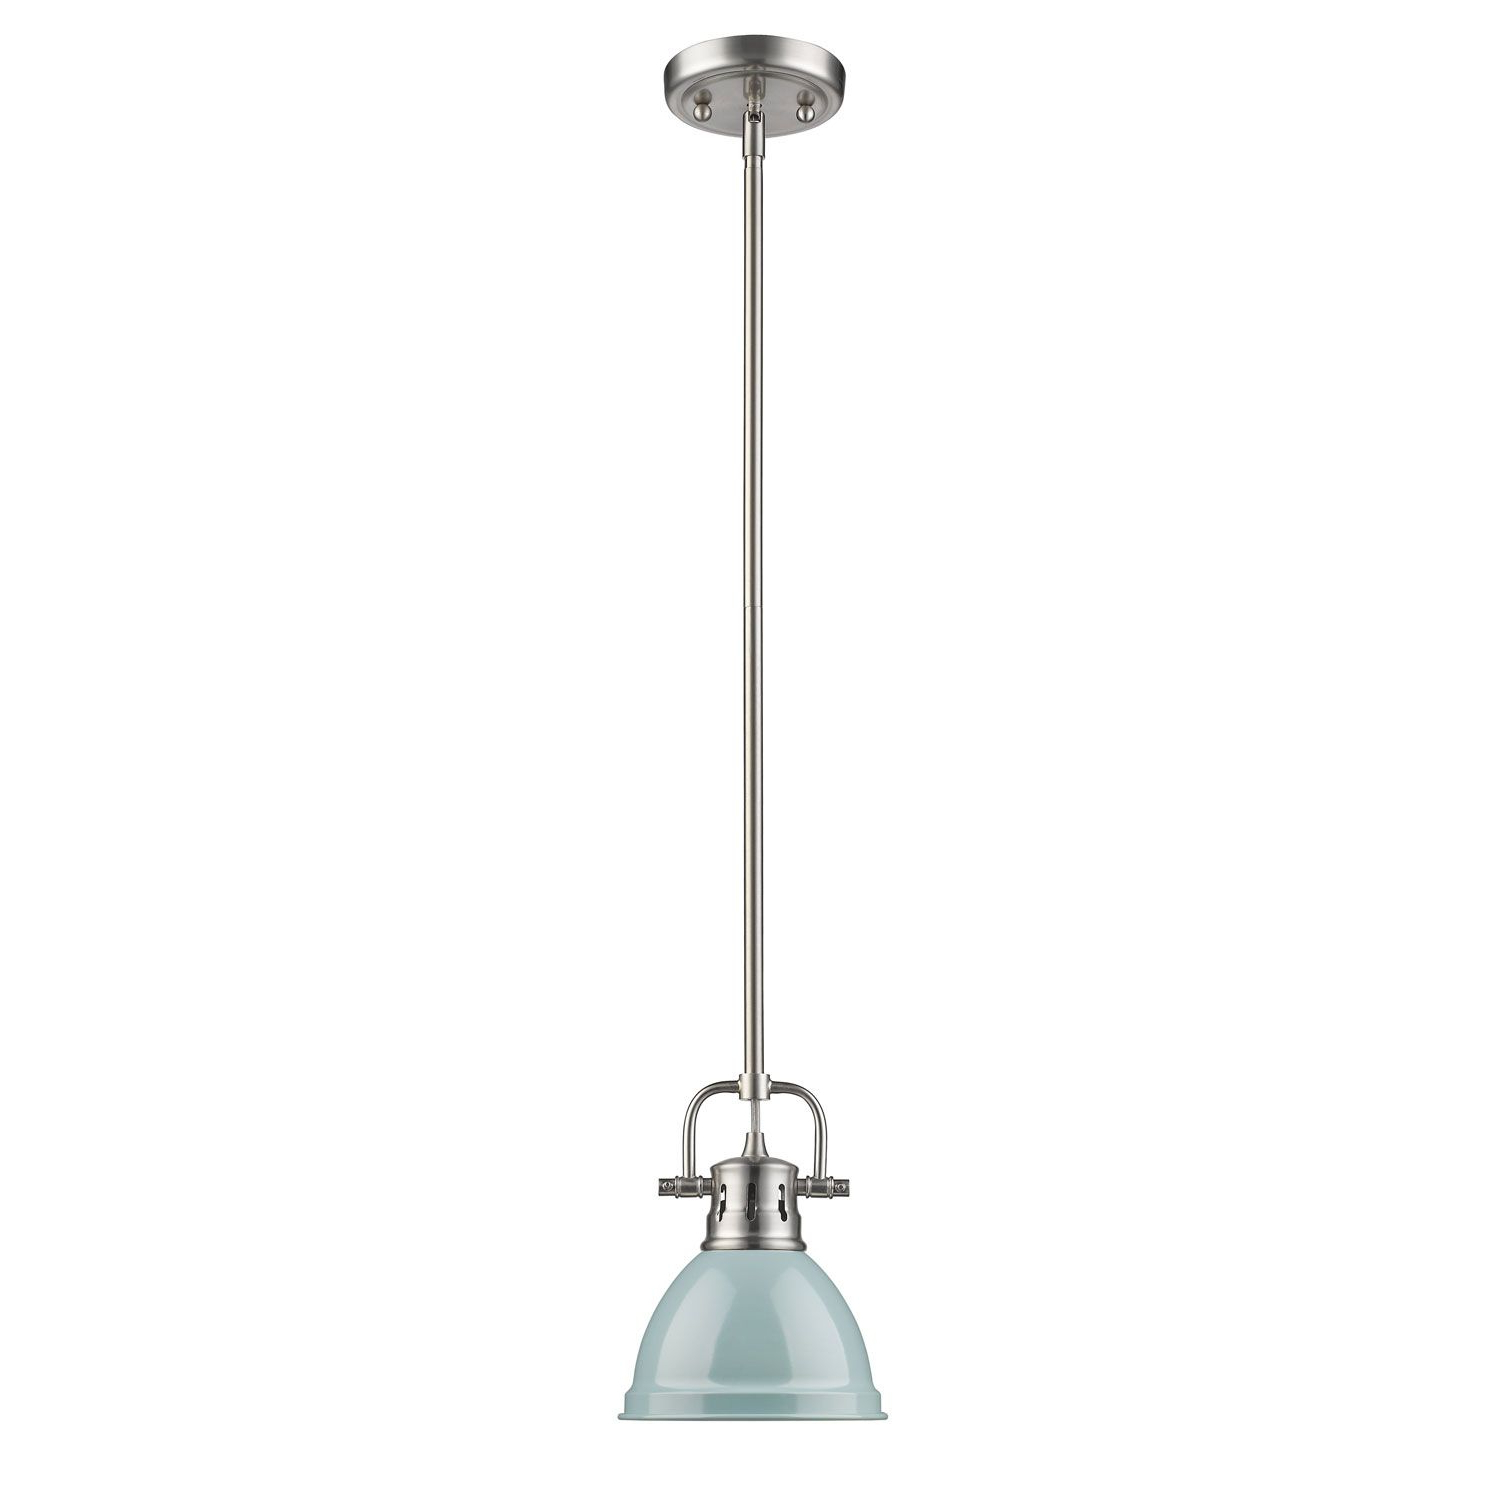 Golden Lighting Duncan Pewter One Light Mini Pendant With For Well Known Ninette 1 Light Dome Pendants (Gallery 18 of 20)